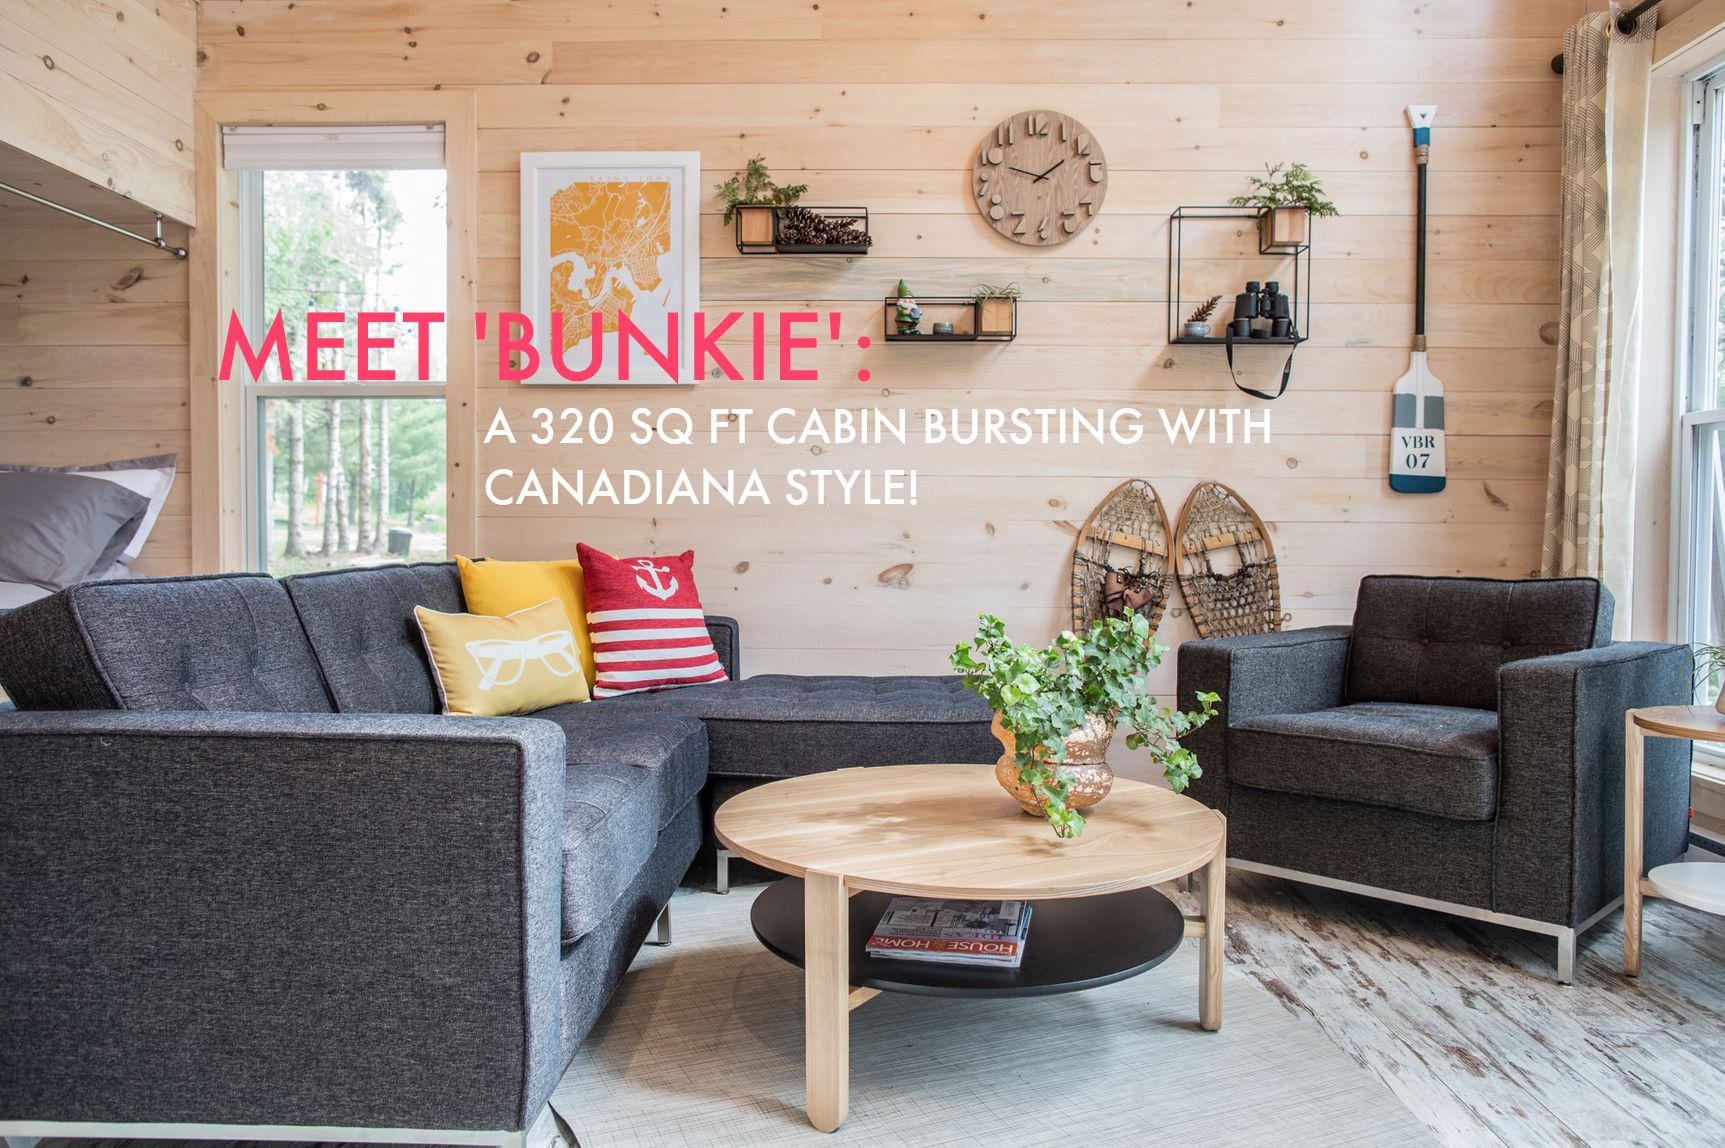 Tuck Interiors Bunkie Interior Design